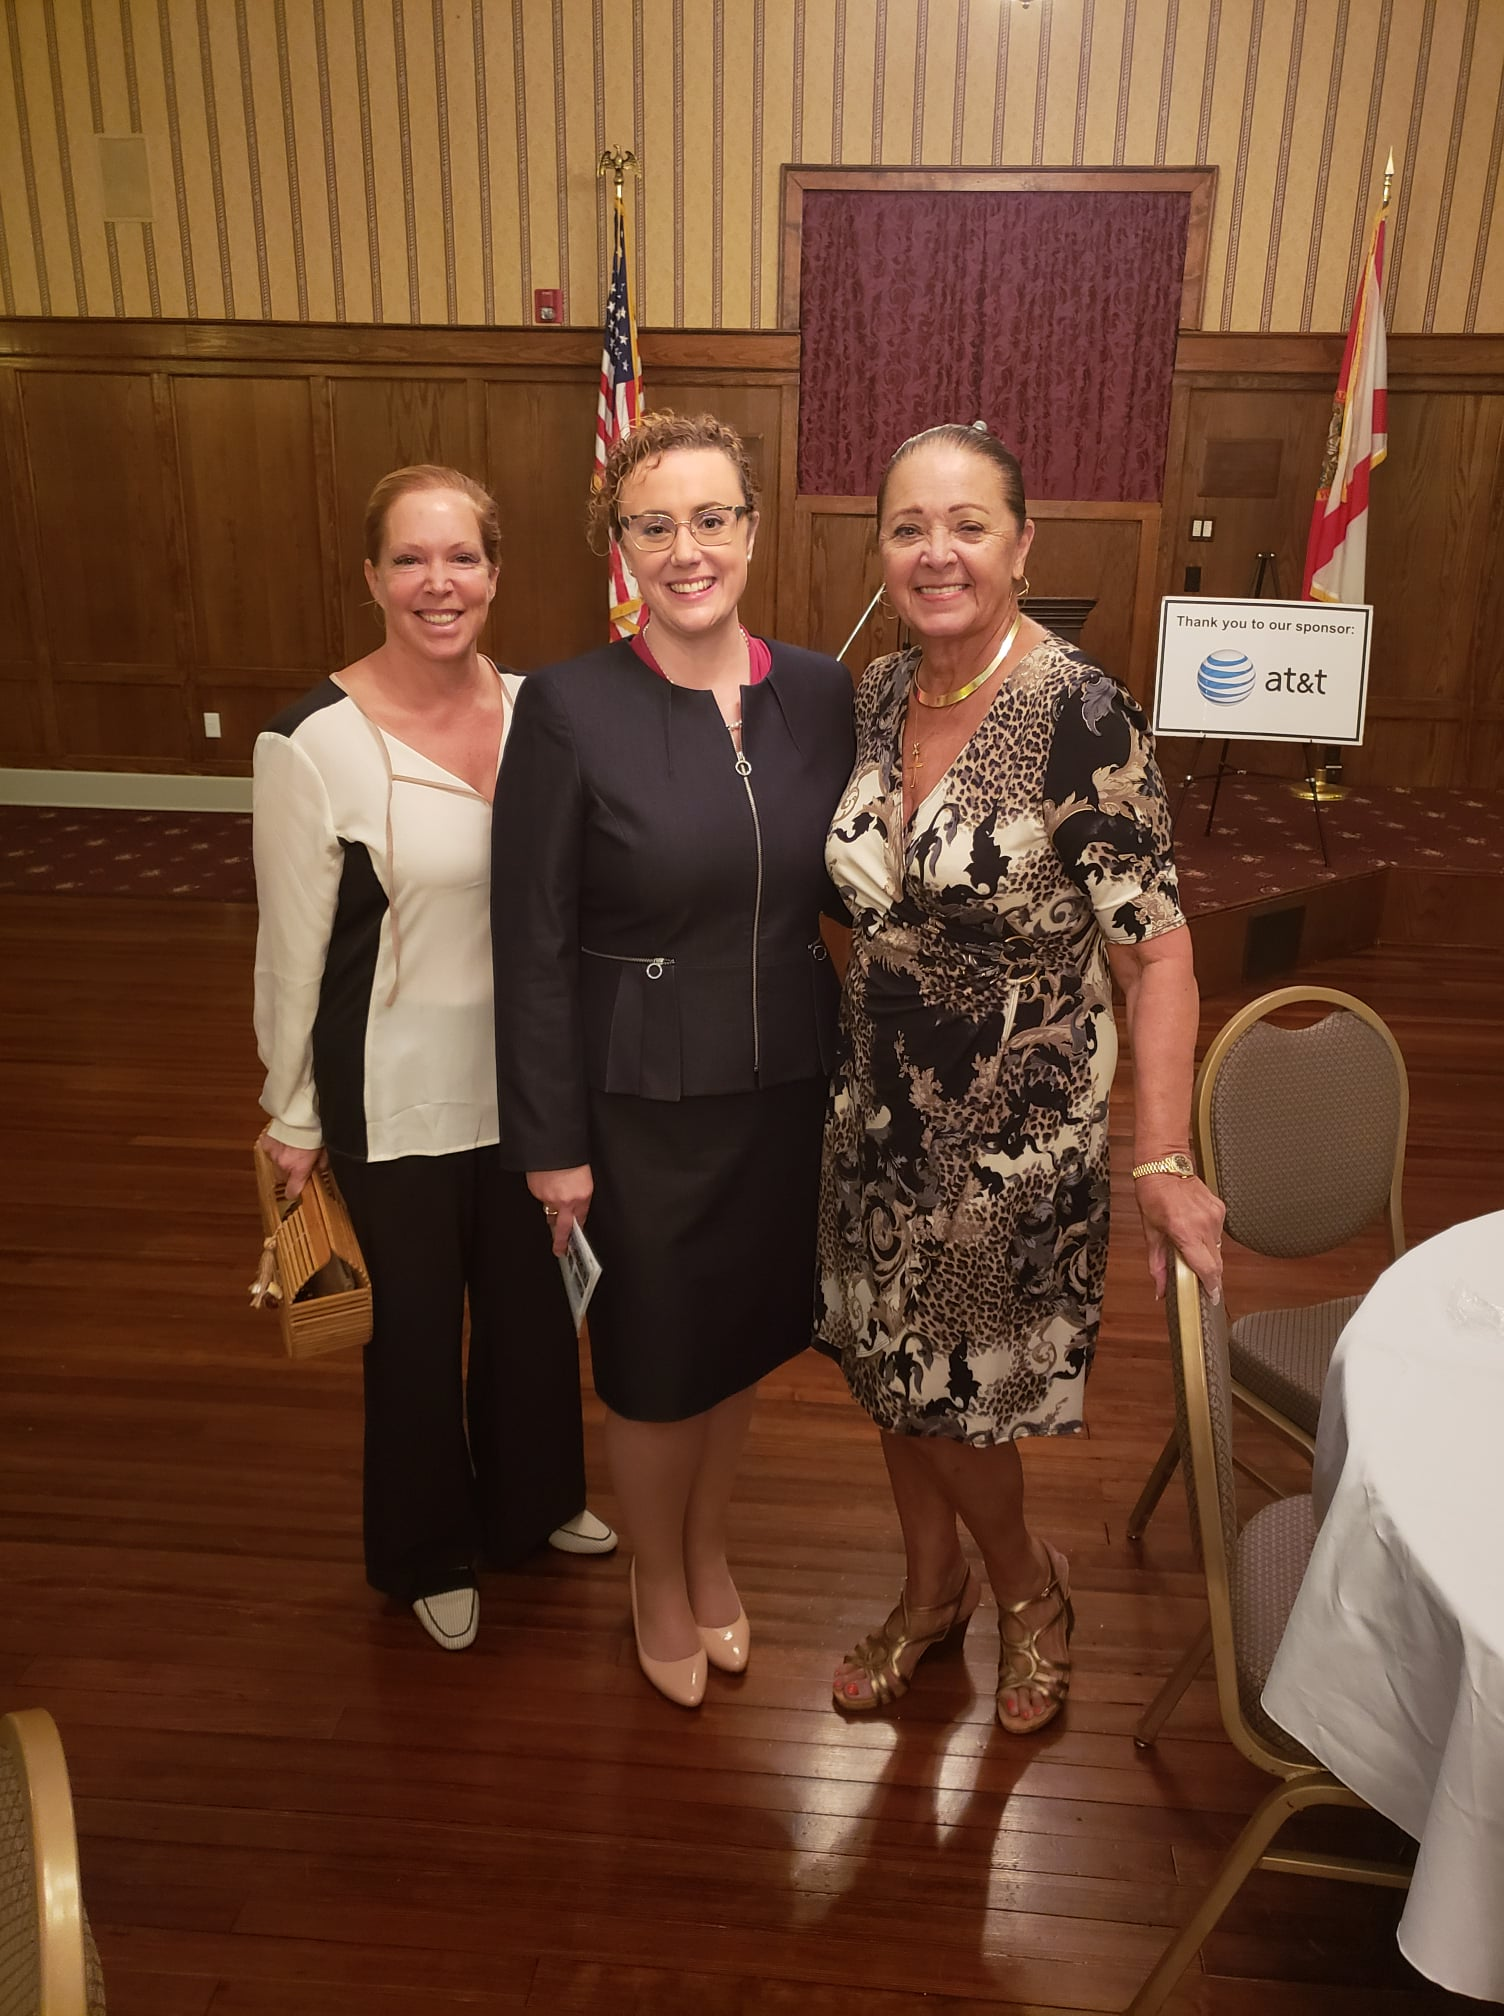 Tracey Zudans, Erin Grall and Carole Jean at a Legislative Luncheon hosted by the Indian River County Chamber of Commerce